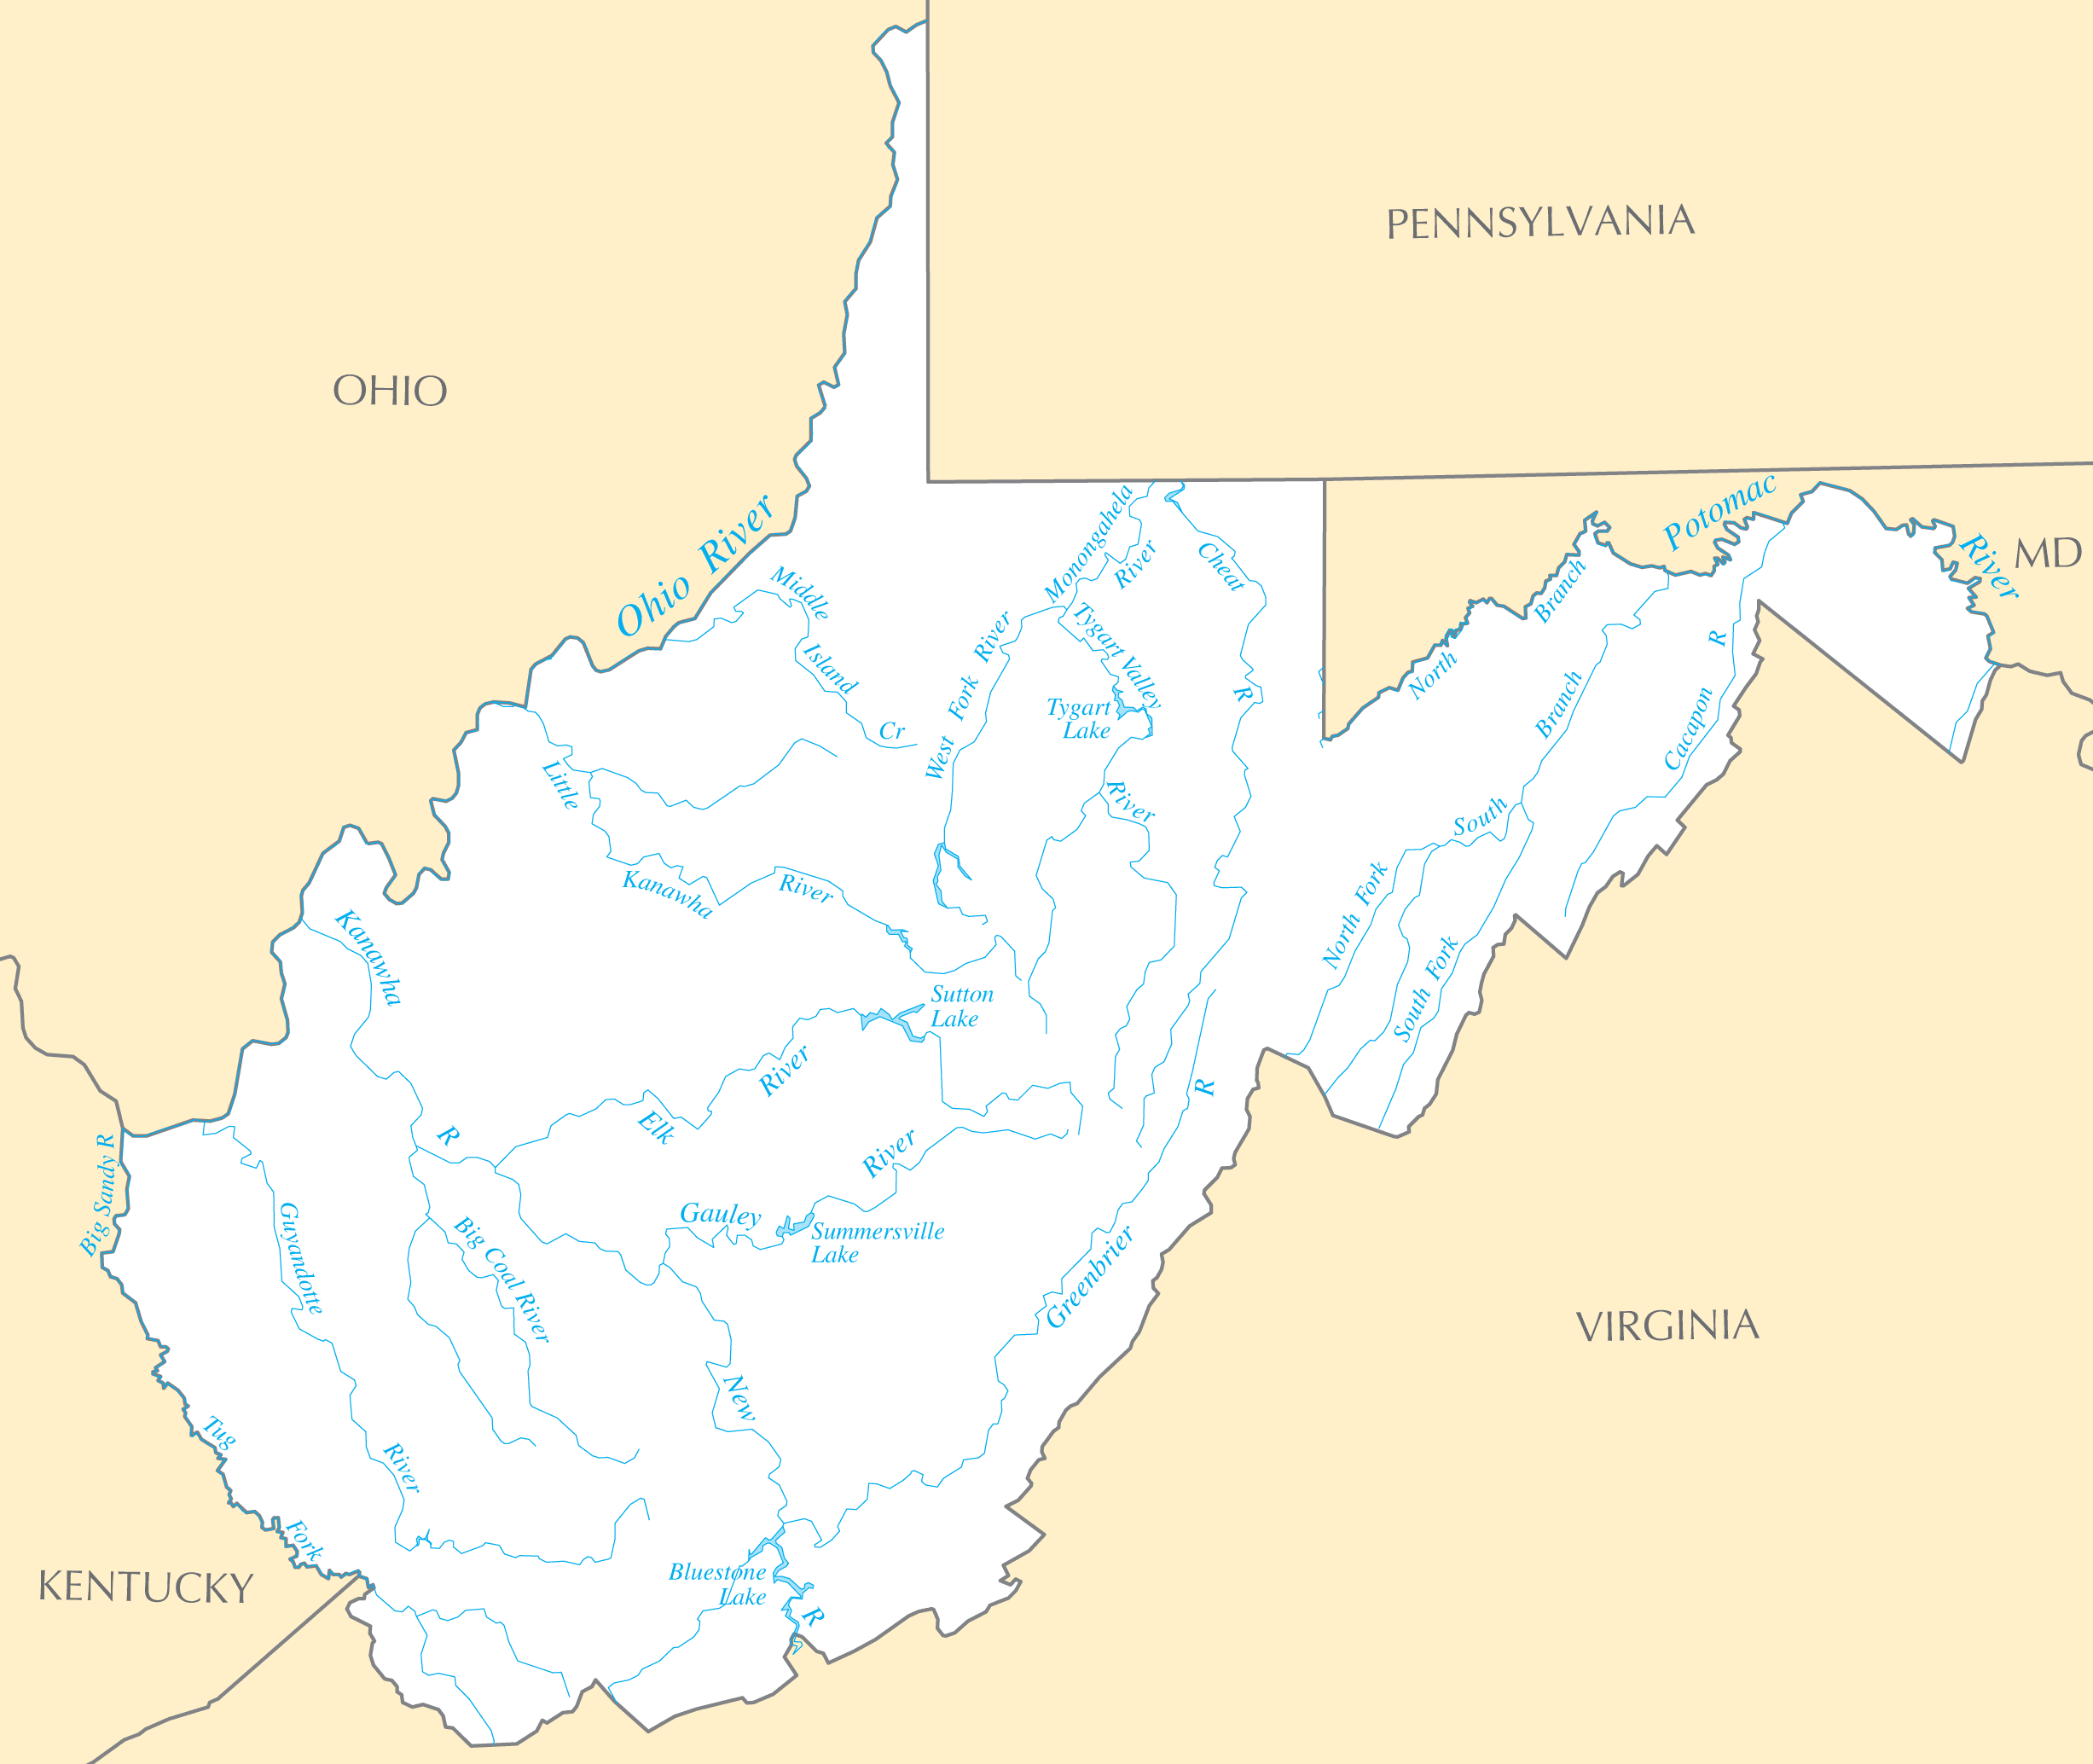 West Virginia Rivers And Lakes Mapsofnet - West virginia rivers map